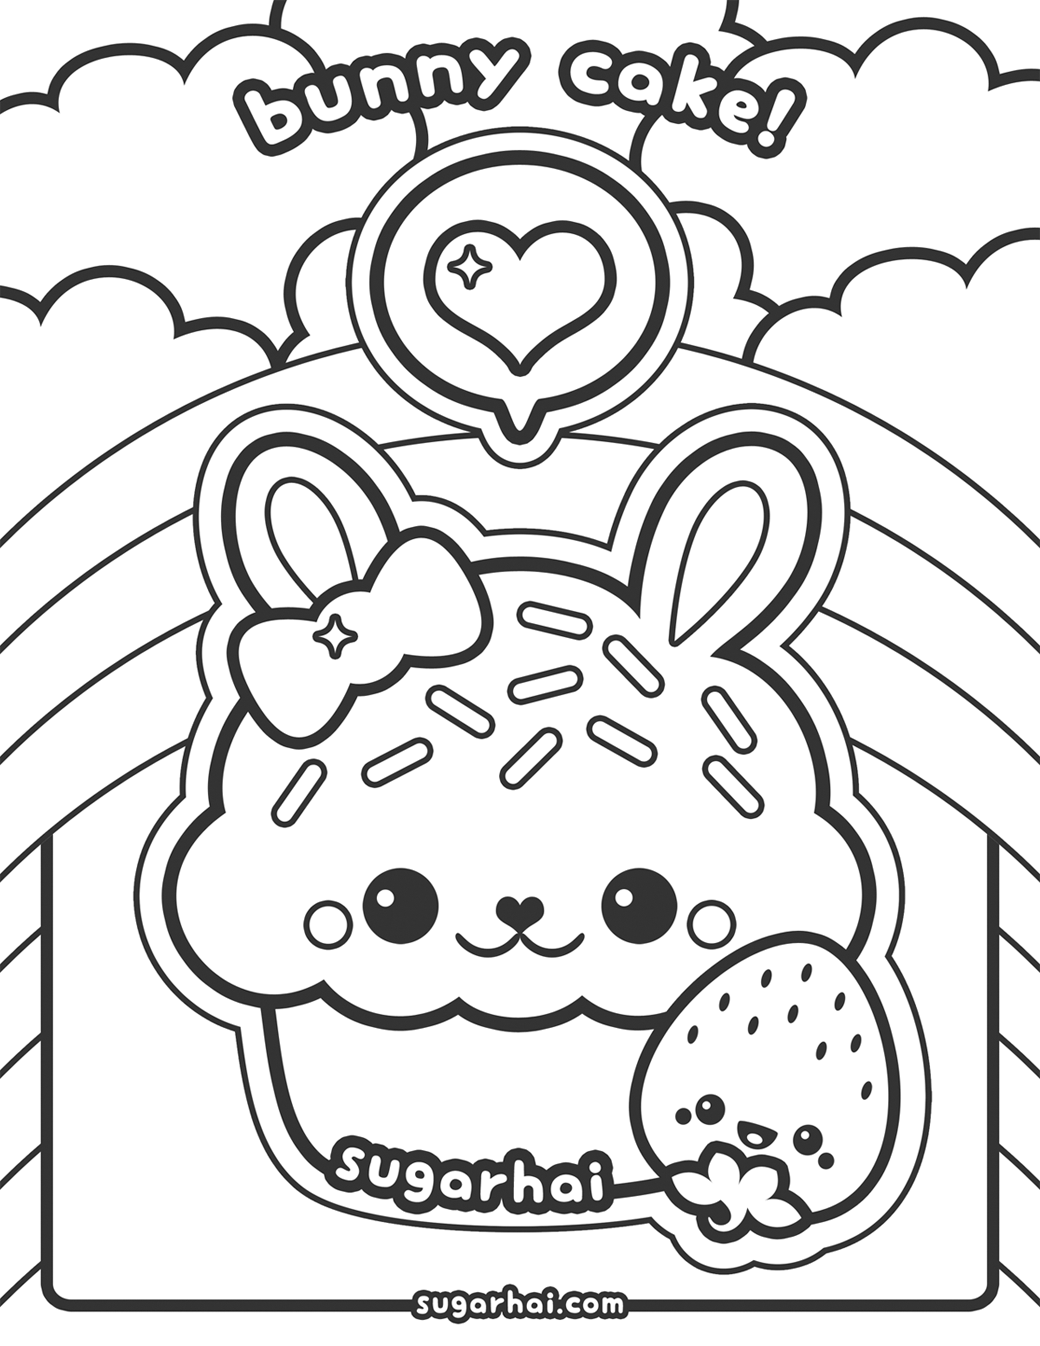 Free Bunny Cake Coloring Page Bunny Cupcakes Bunny And Adult